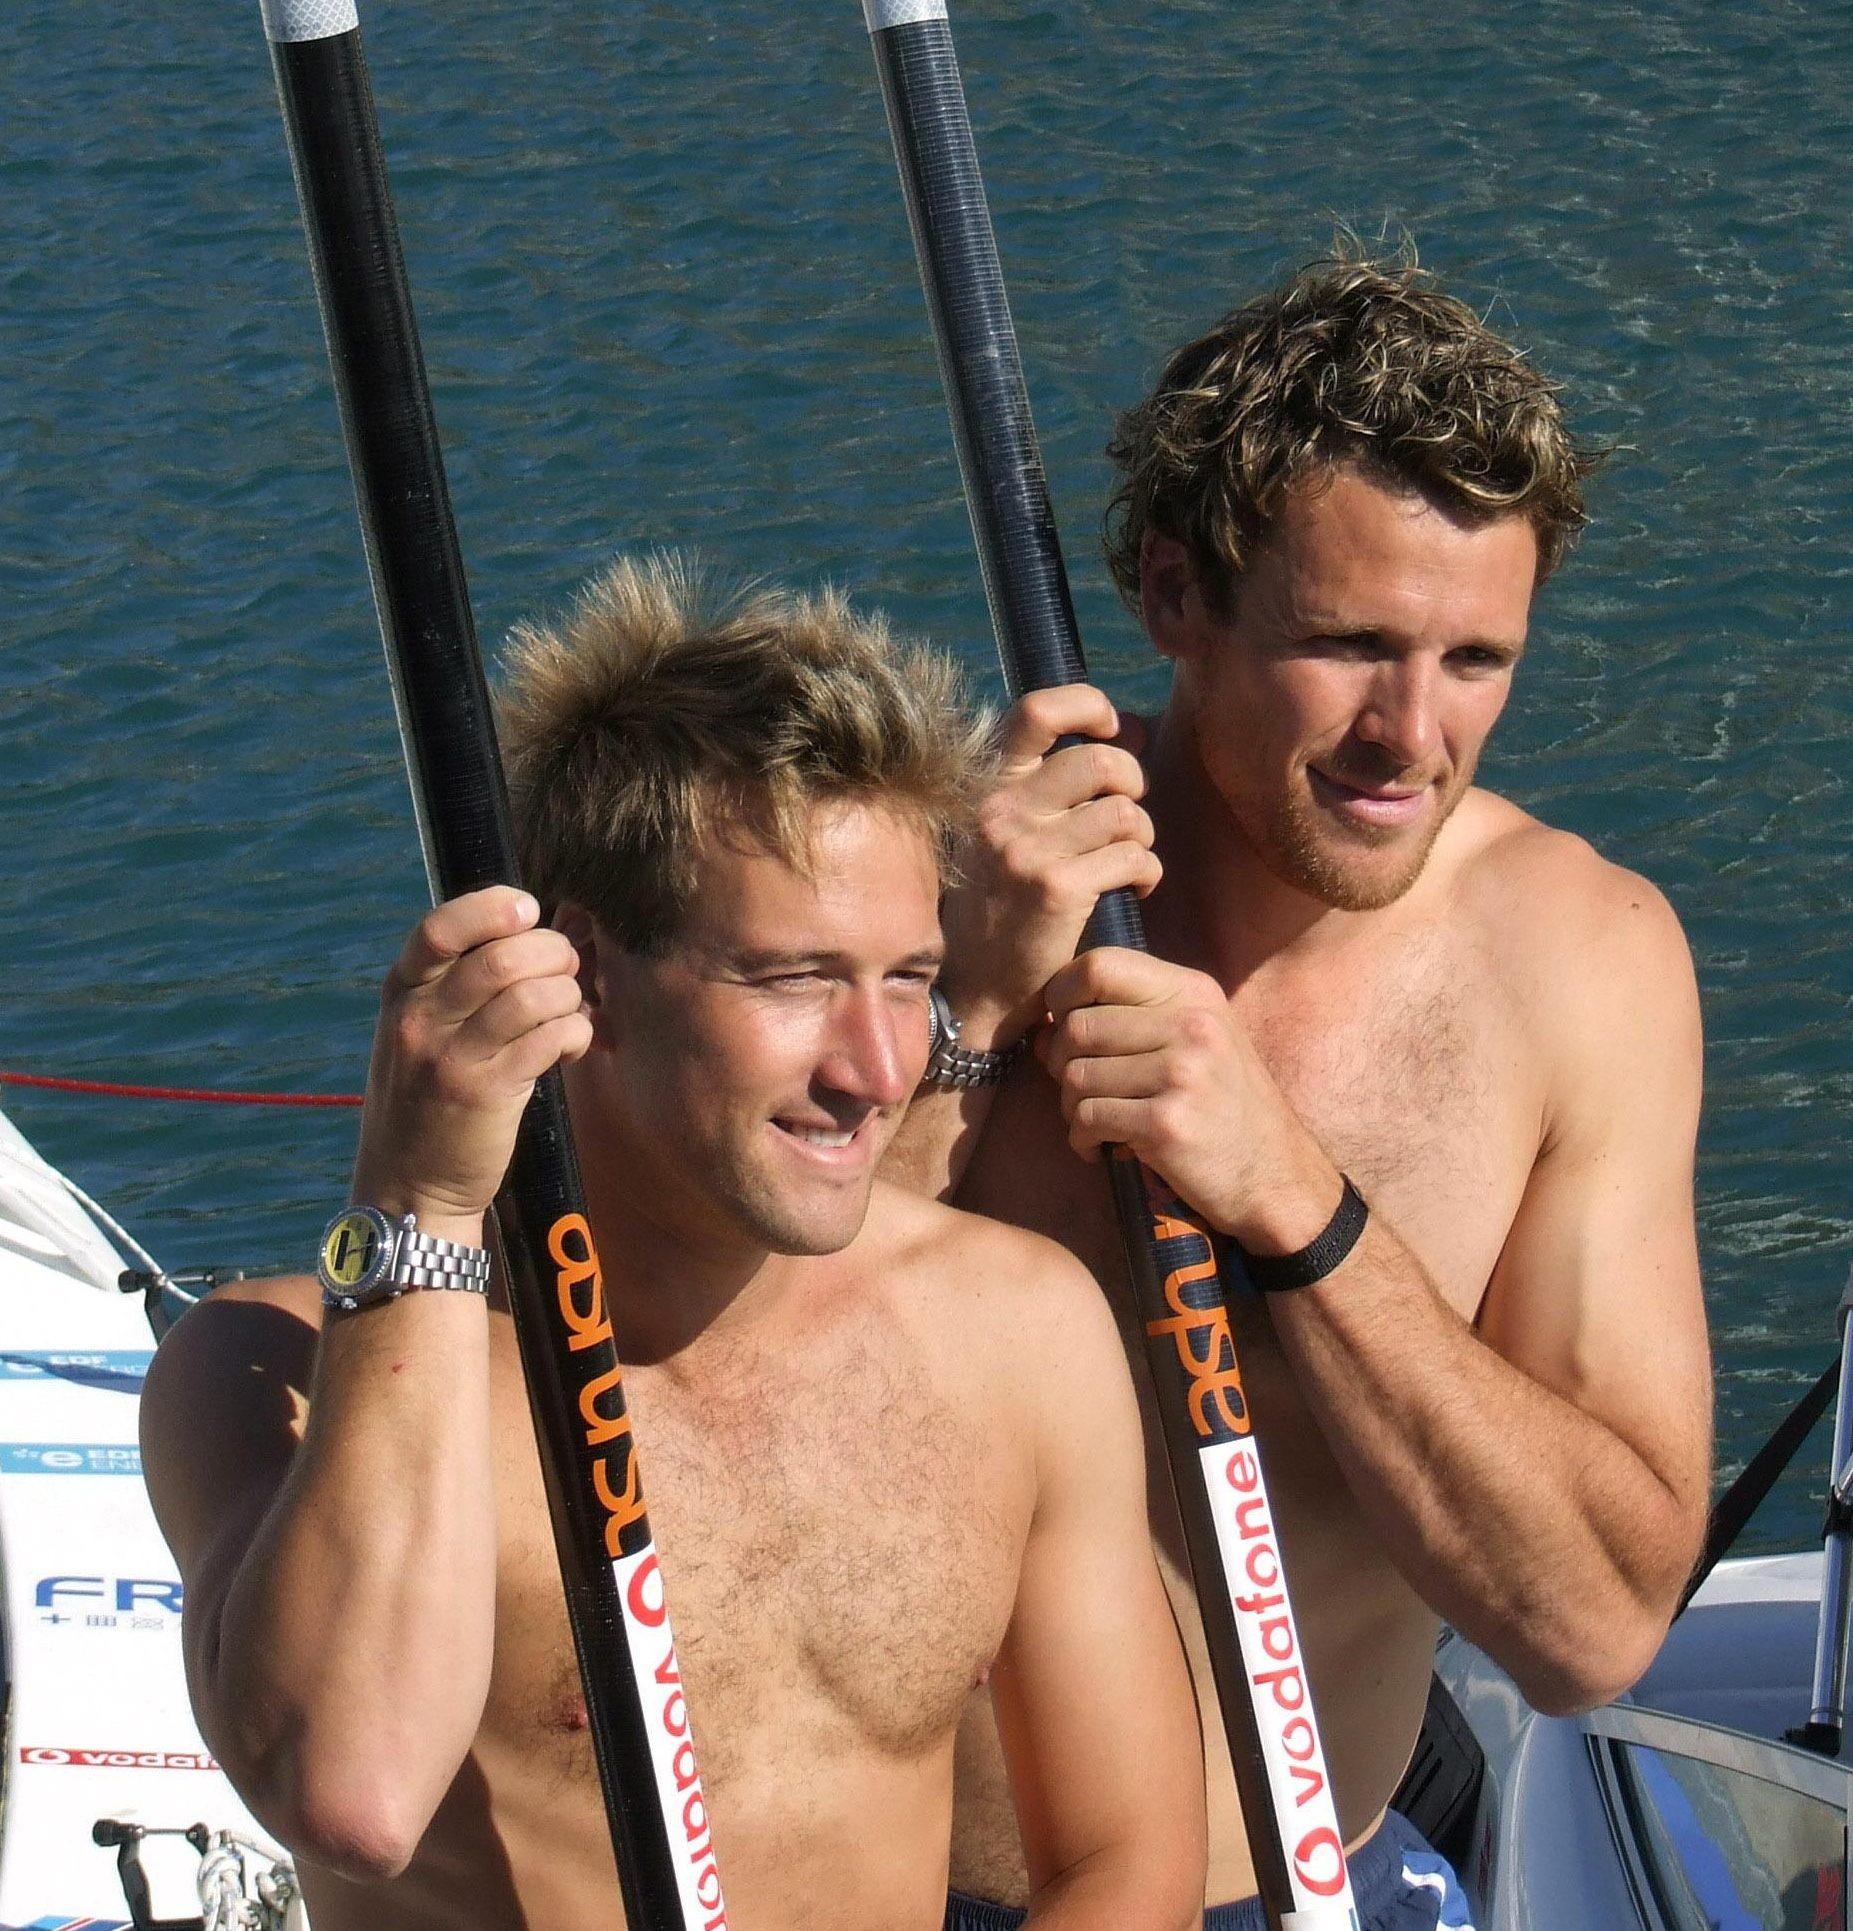 Cracknell and Ben Fogle prepare to row across the Atlantic in 2008